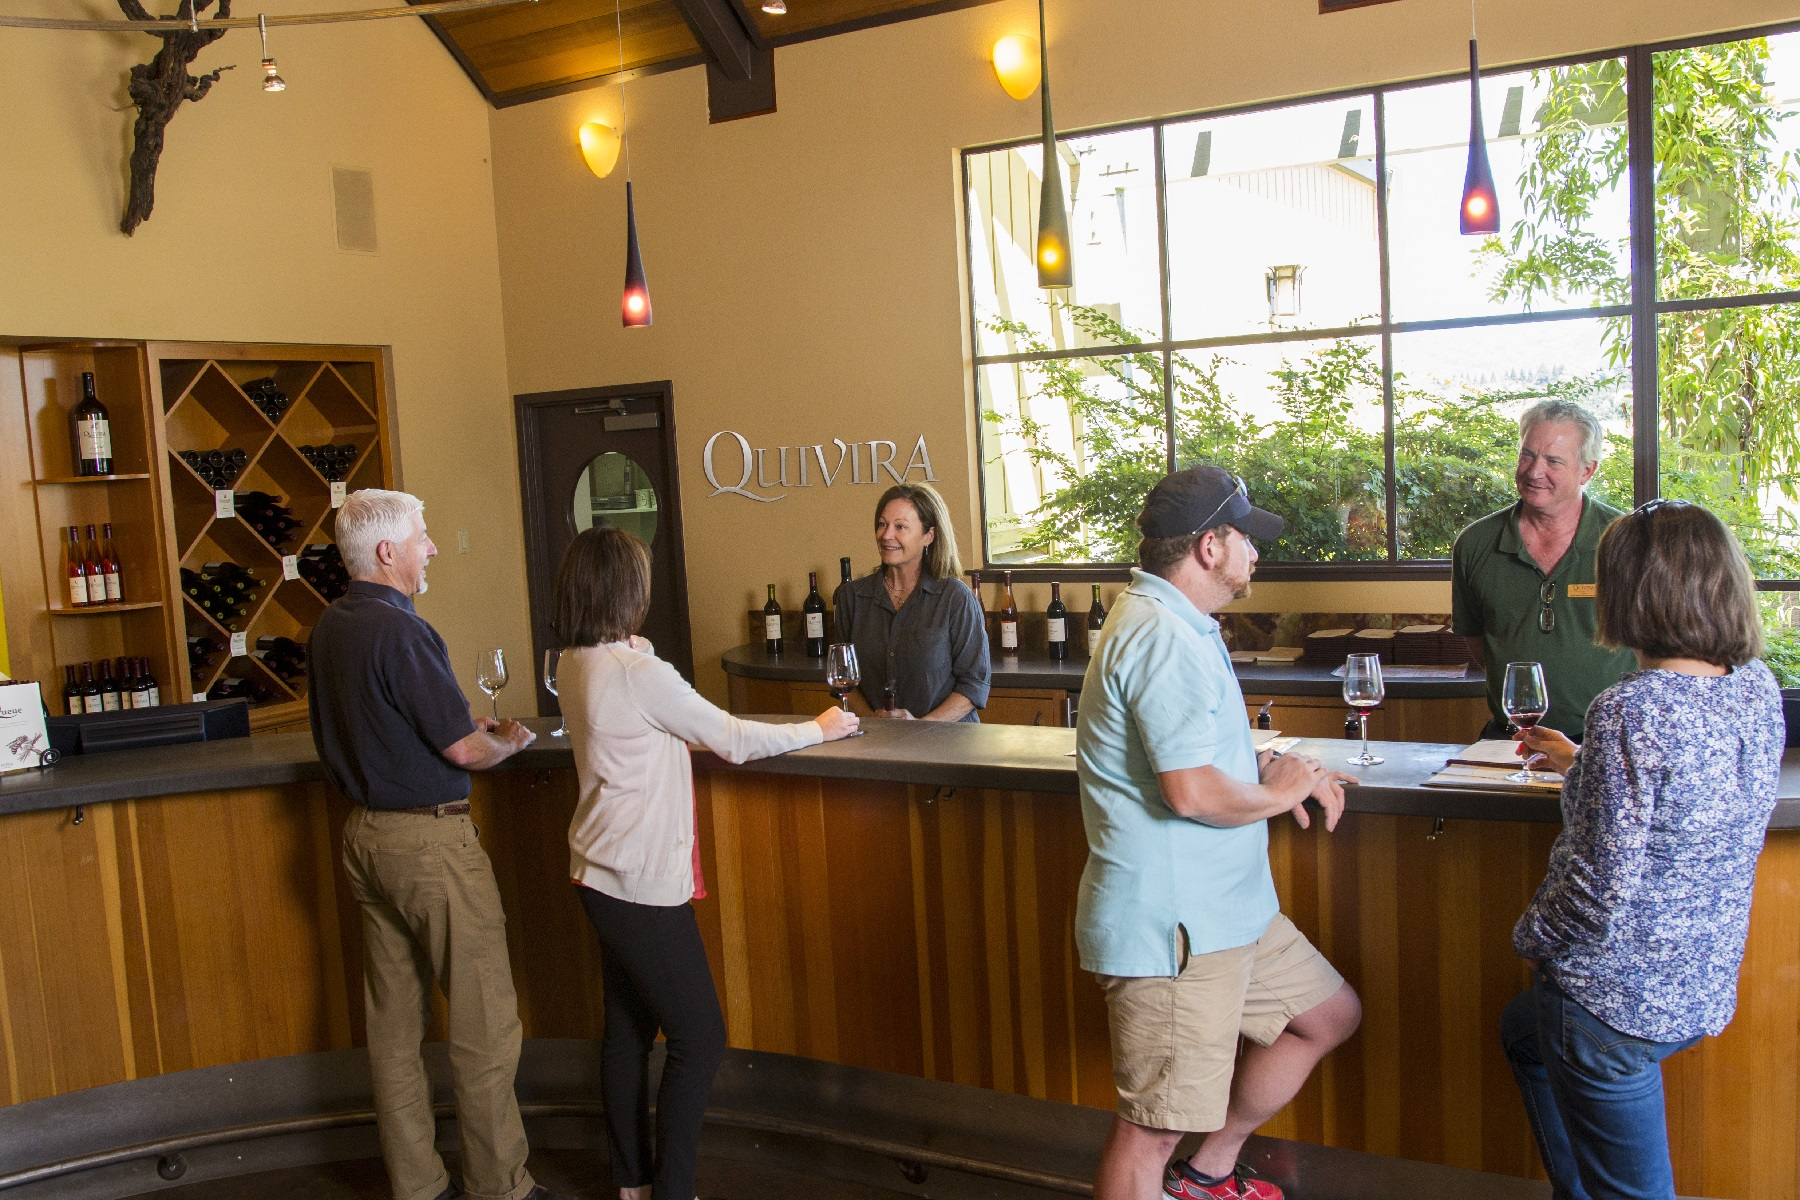 A picture of the tasting room with 6 people standing and talking